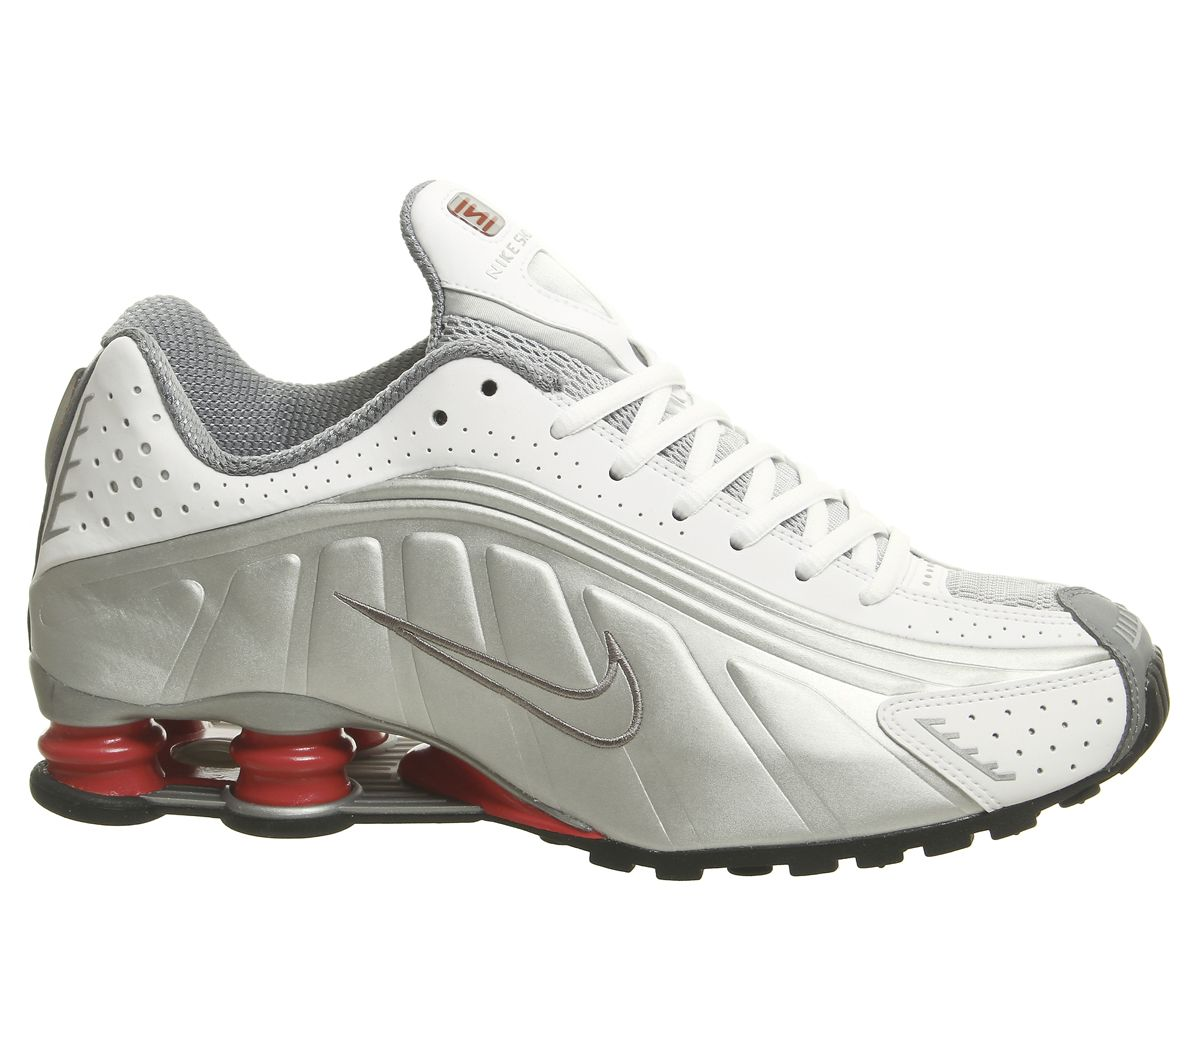 Men Nike Shox R4 Trainers Sneakers White Metallic Silver Cement Red Black 3349013886